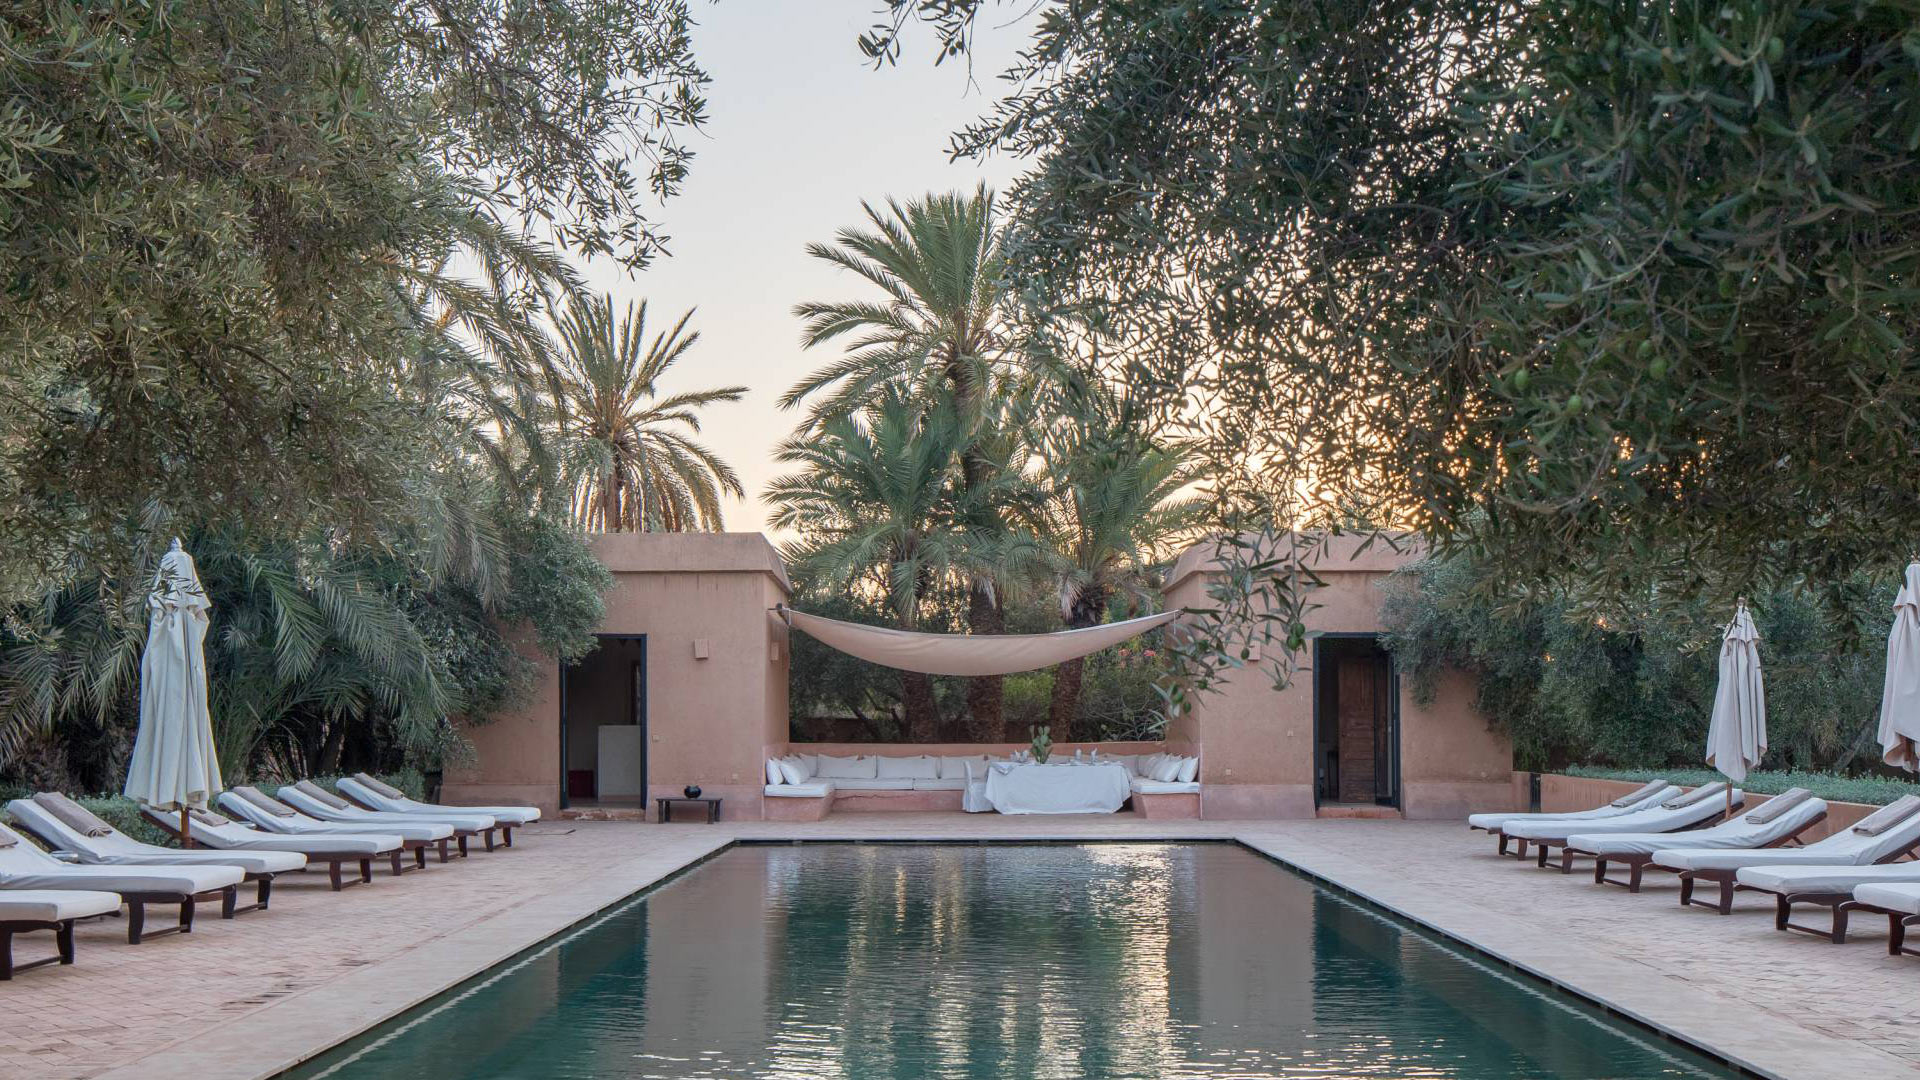 Villa Villa Ursula, Location à Marrakech